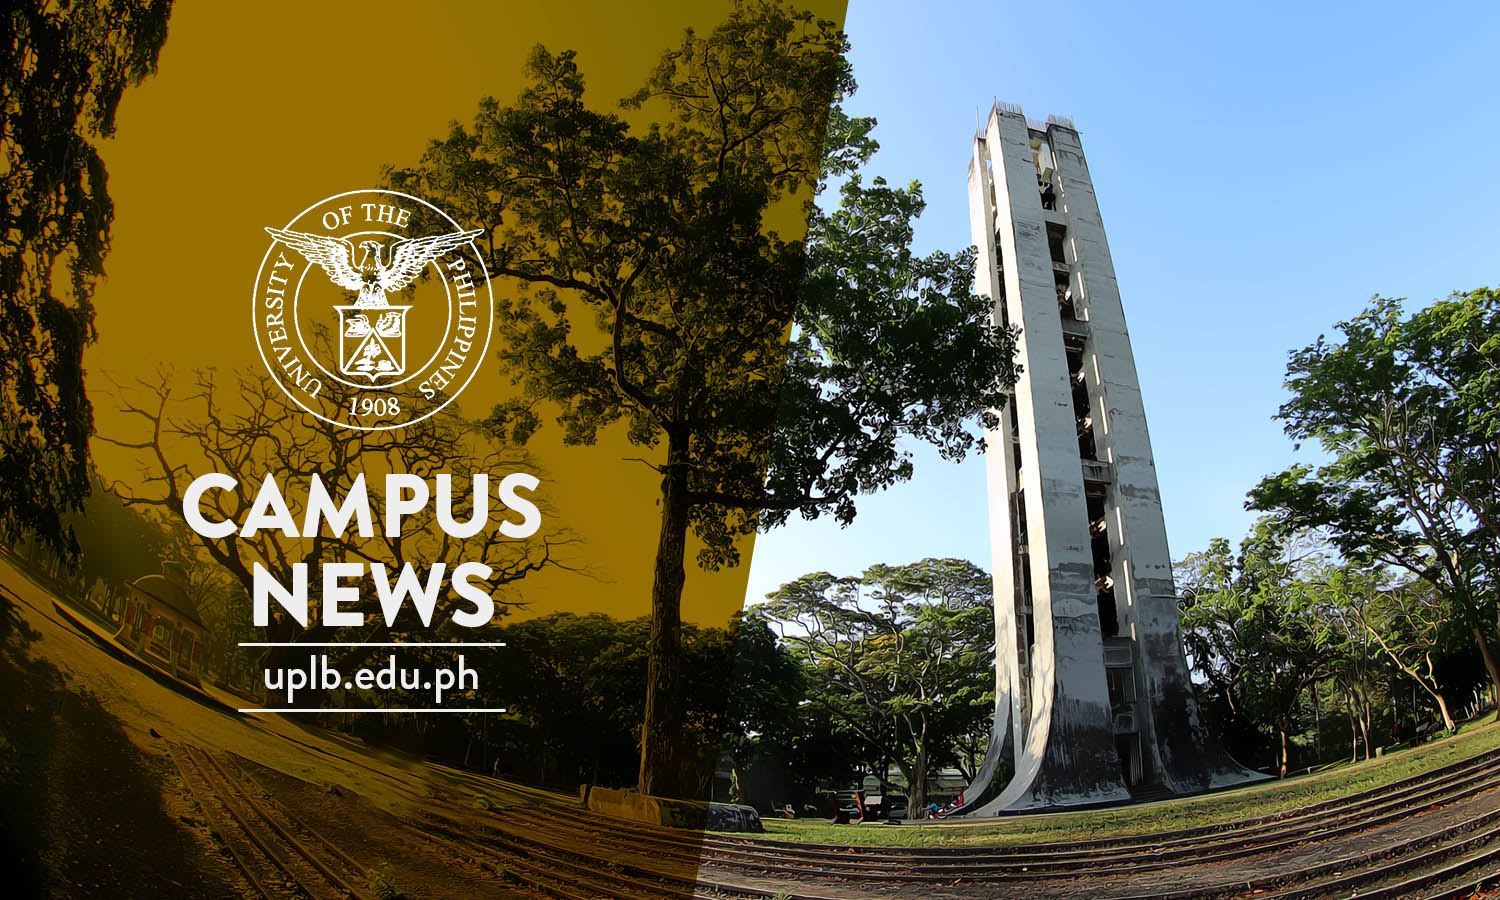 [UPLB Advisory] Shifting of UPLB and UPRHS to Online Classes and Contingency Plan in light of COVID-19